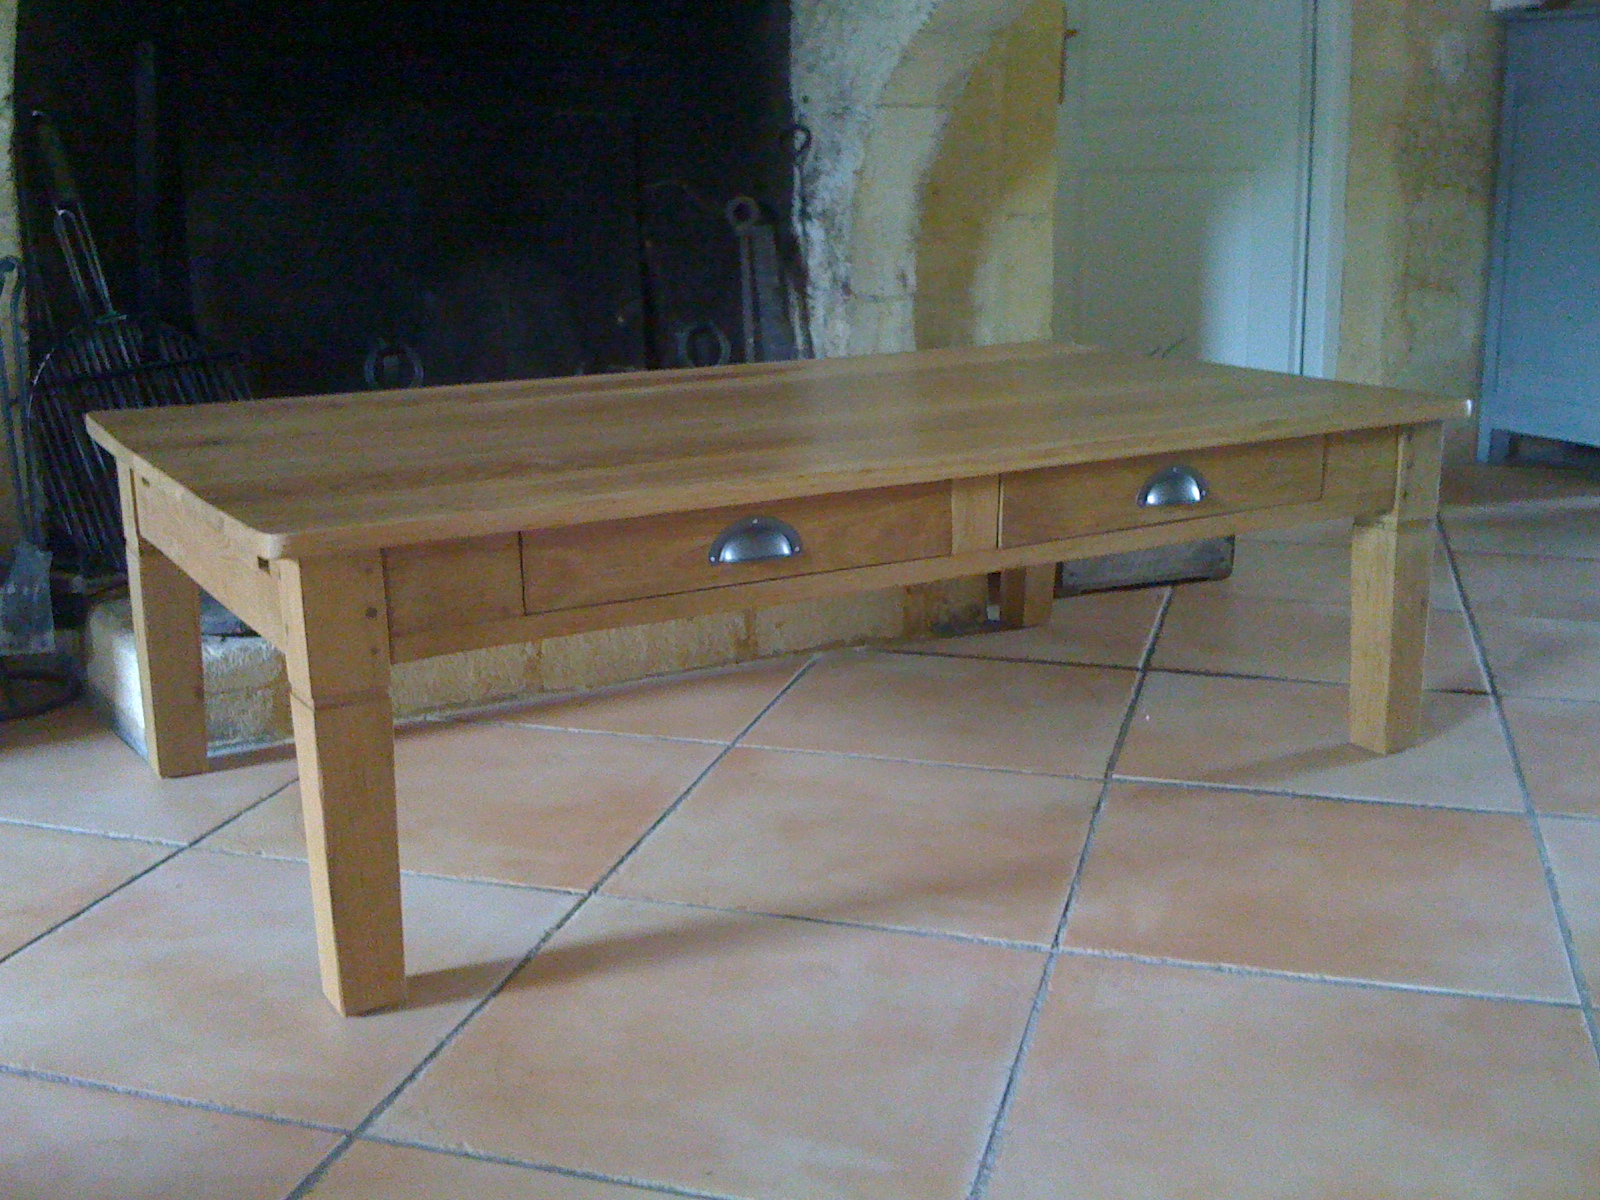 Customiser une table basse en bois for Customiser une table en bois